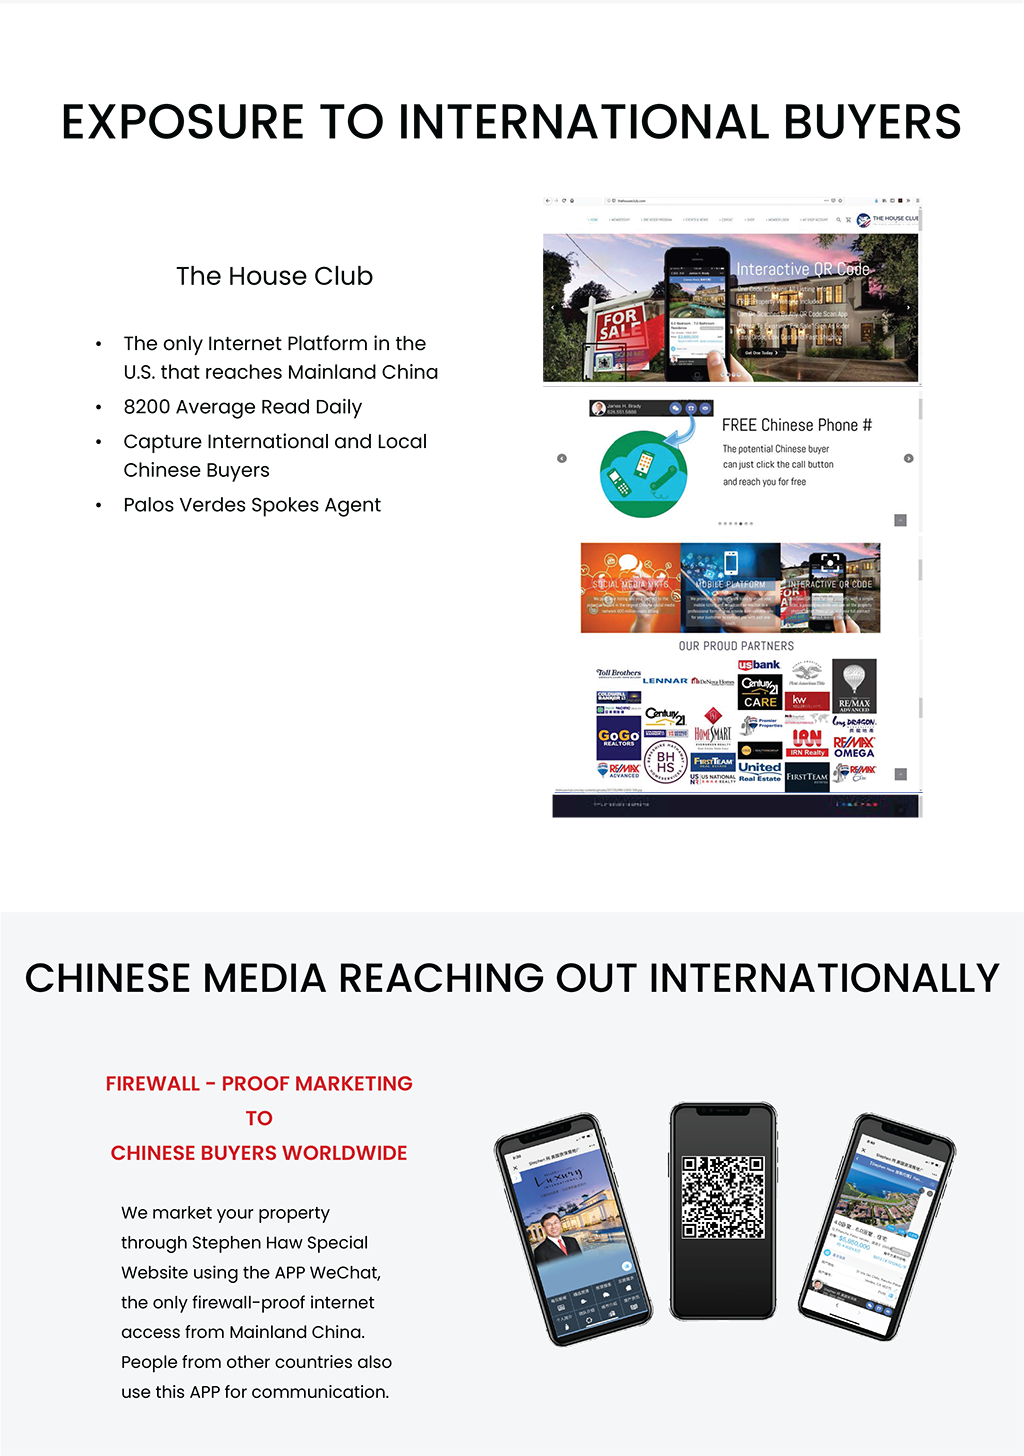 World Journal circulation. Exposure to international buyers. The House Club. The only internet platform in the U.S. that reaches Mainland China. 8200 average read daily. capture international and local chinese buyers. palos verdes spokes agent. Chinese media reaching out internationally. Firewall-proof marketing to chinese buyers worldwide. We market your property through Stephen Haw Special Website using the APP WeChat, the only firewall-roof internet access from Mainland China. People from other countries also use this APP for communication.